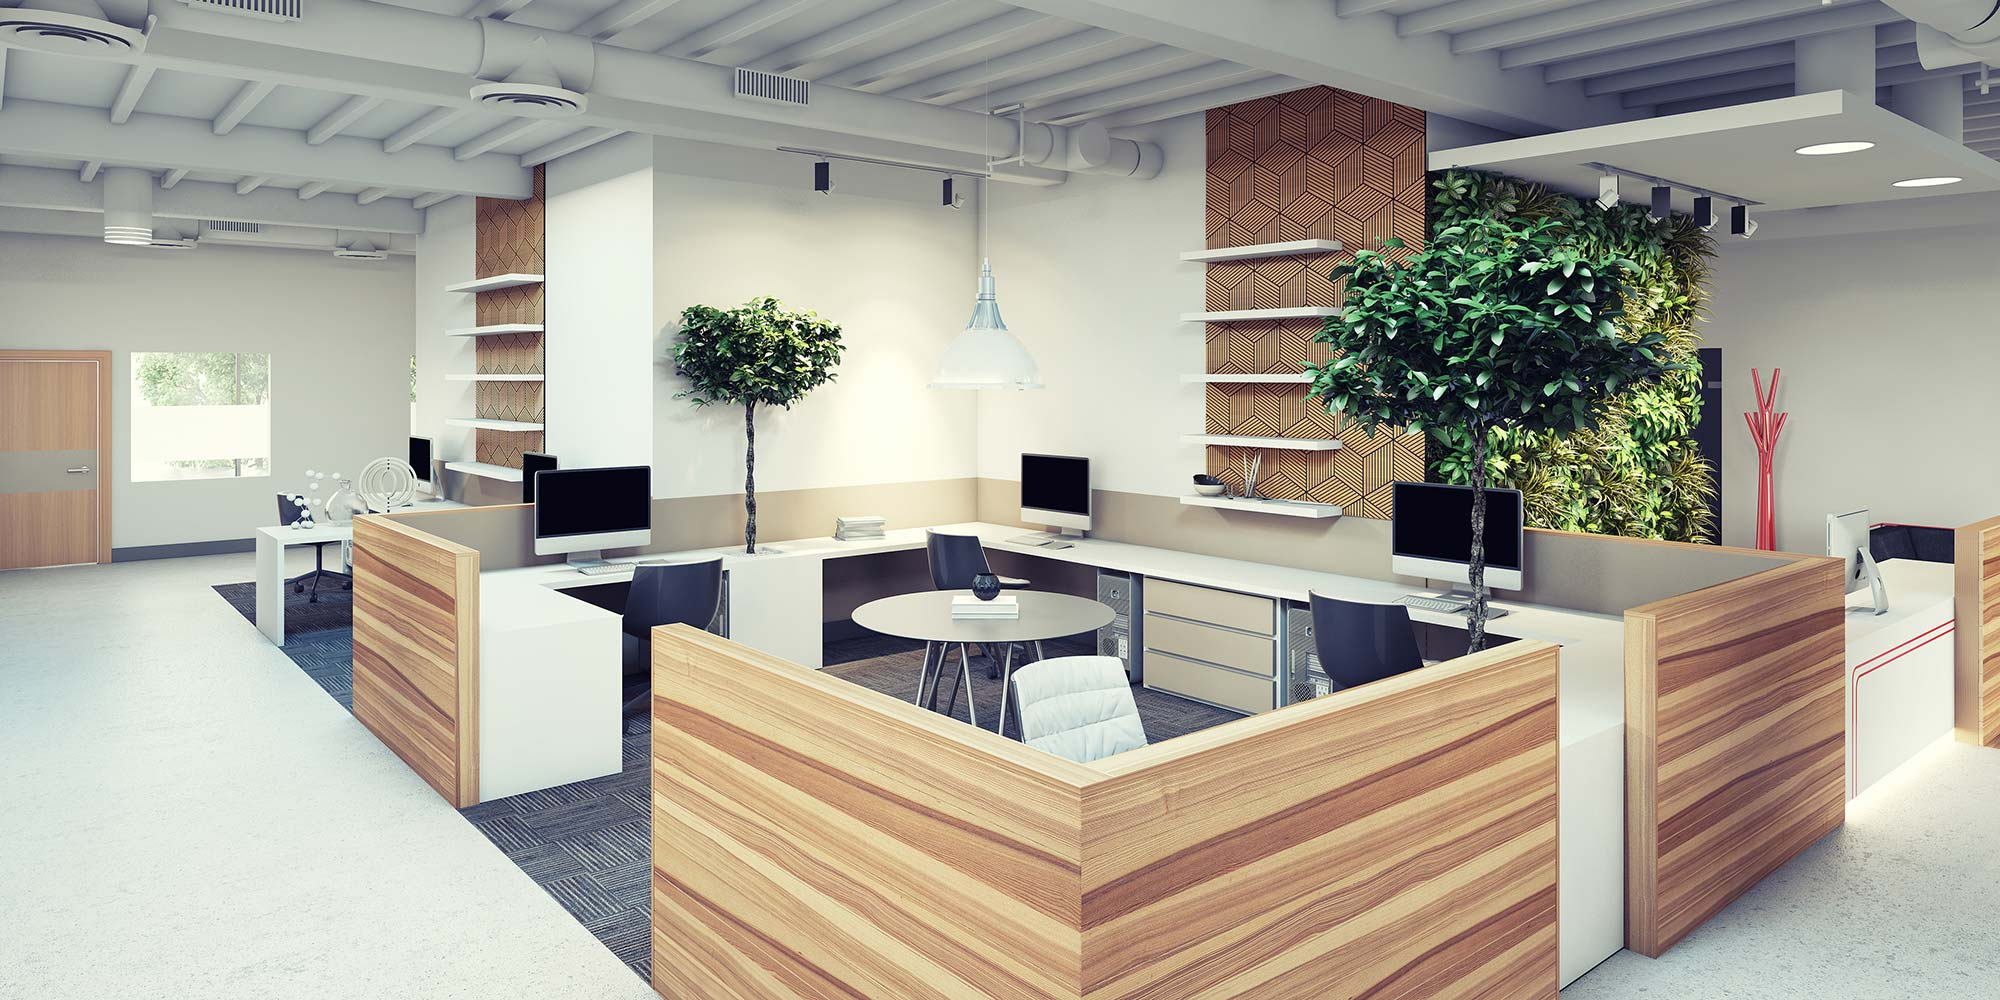 Designing Offices For Wellness